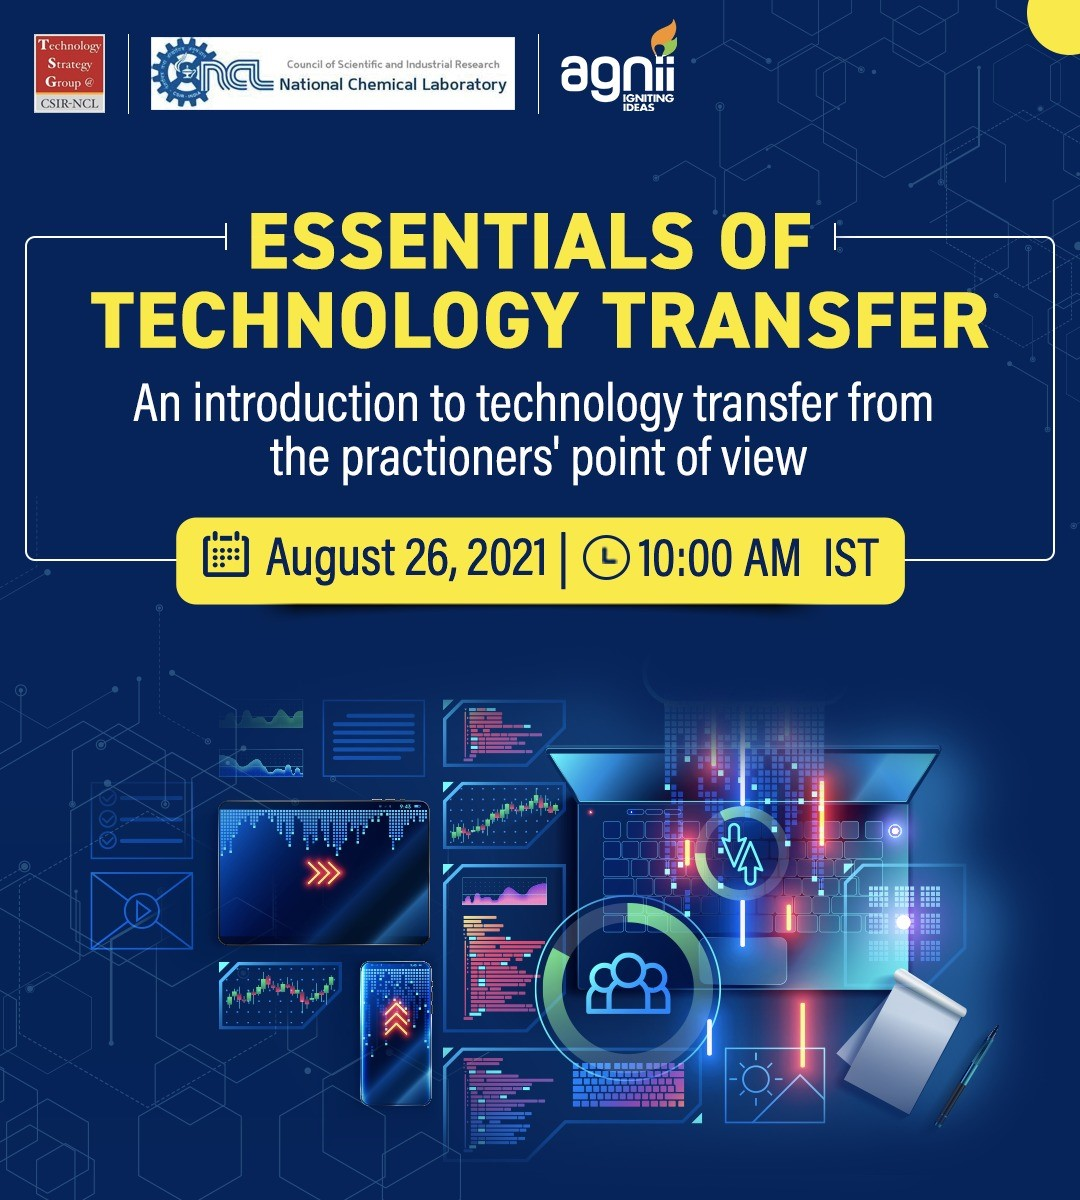 AGNIi and CSIR-NCL partner for 'Essentials of Technology Transfer'